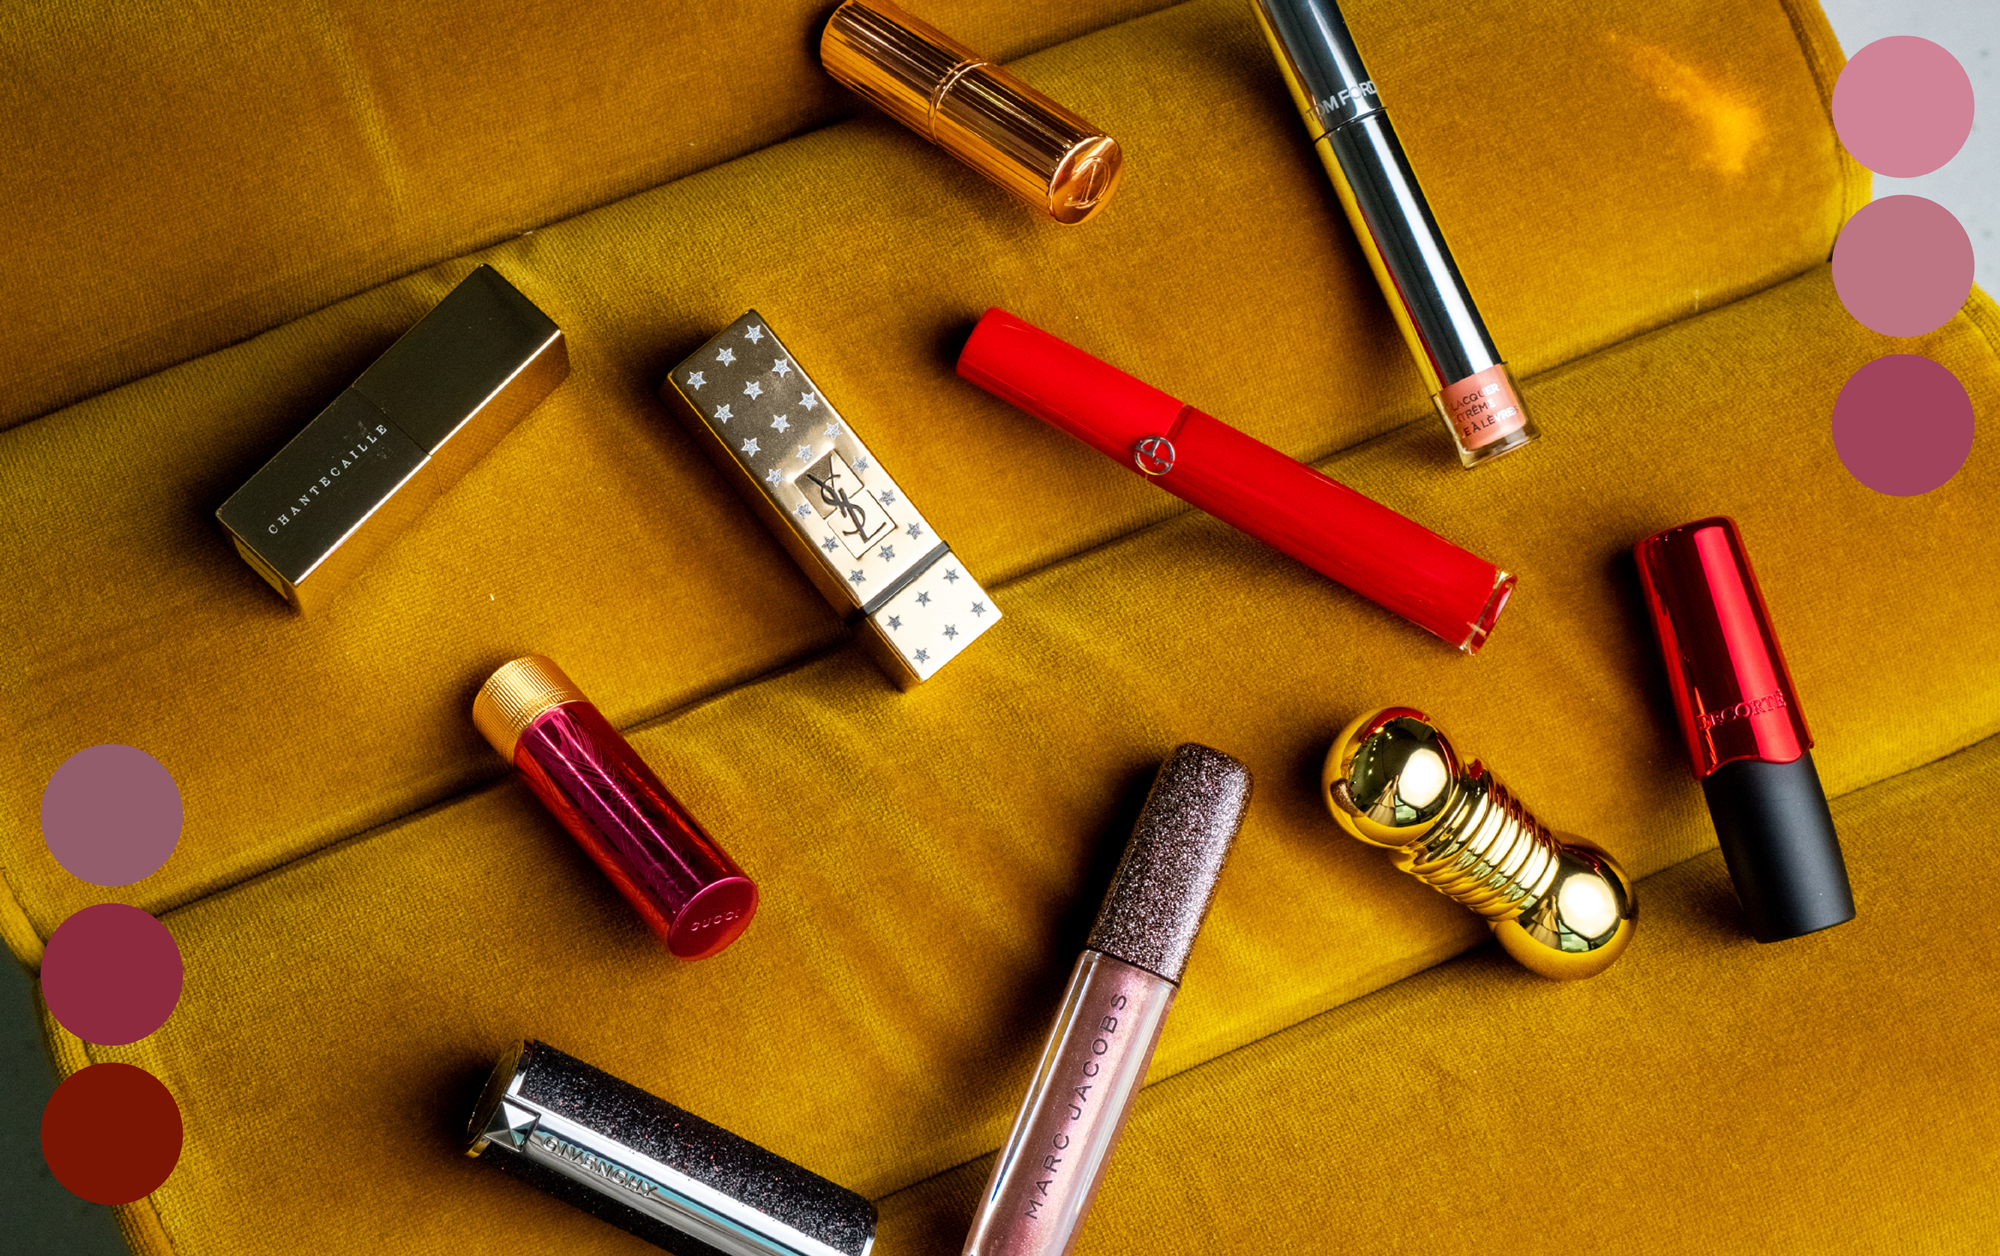 10 Festive Lipsticks To Wear This Holiday